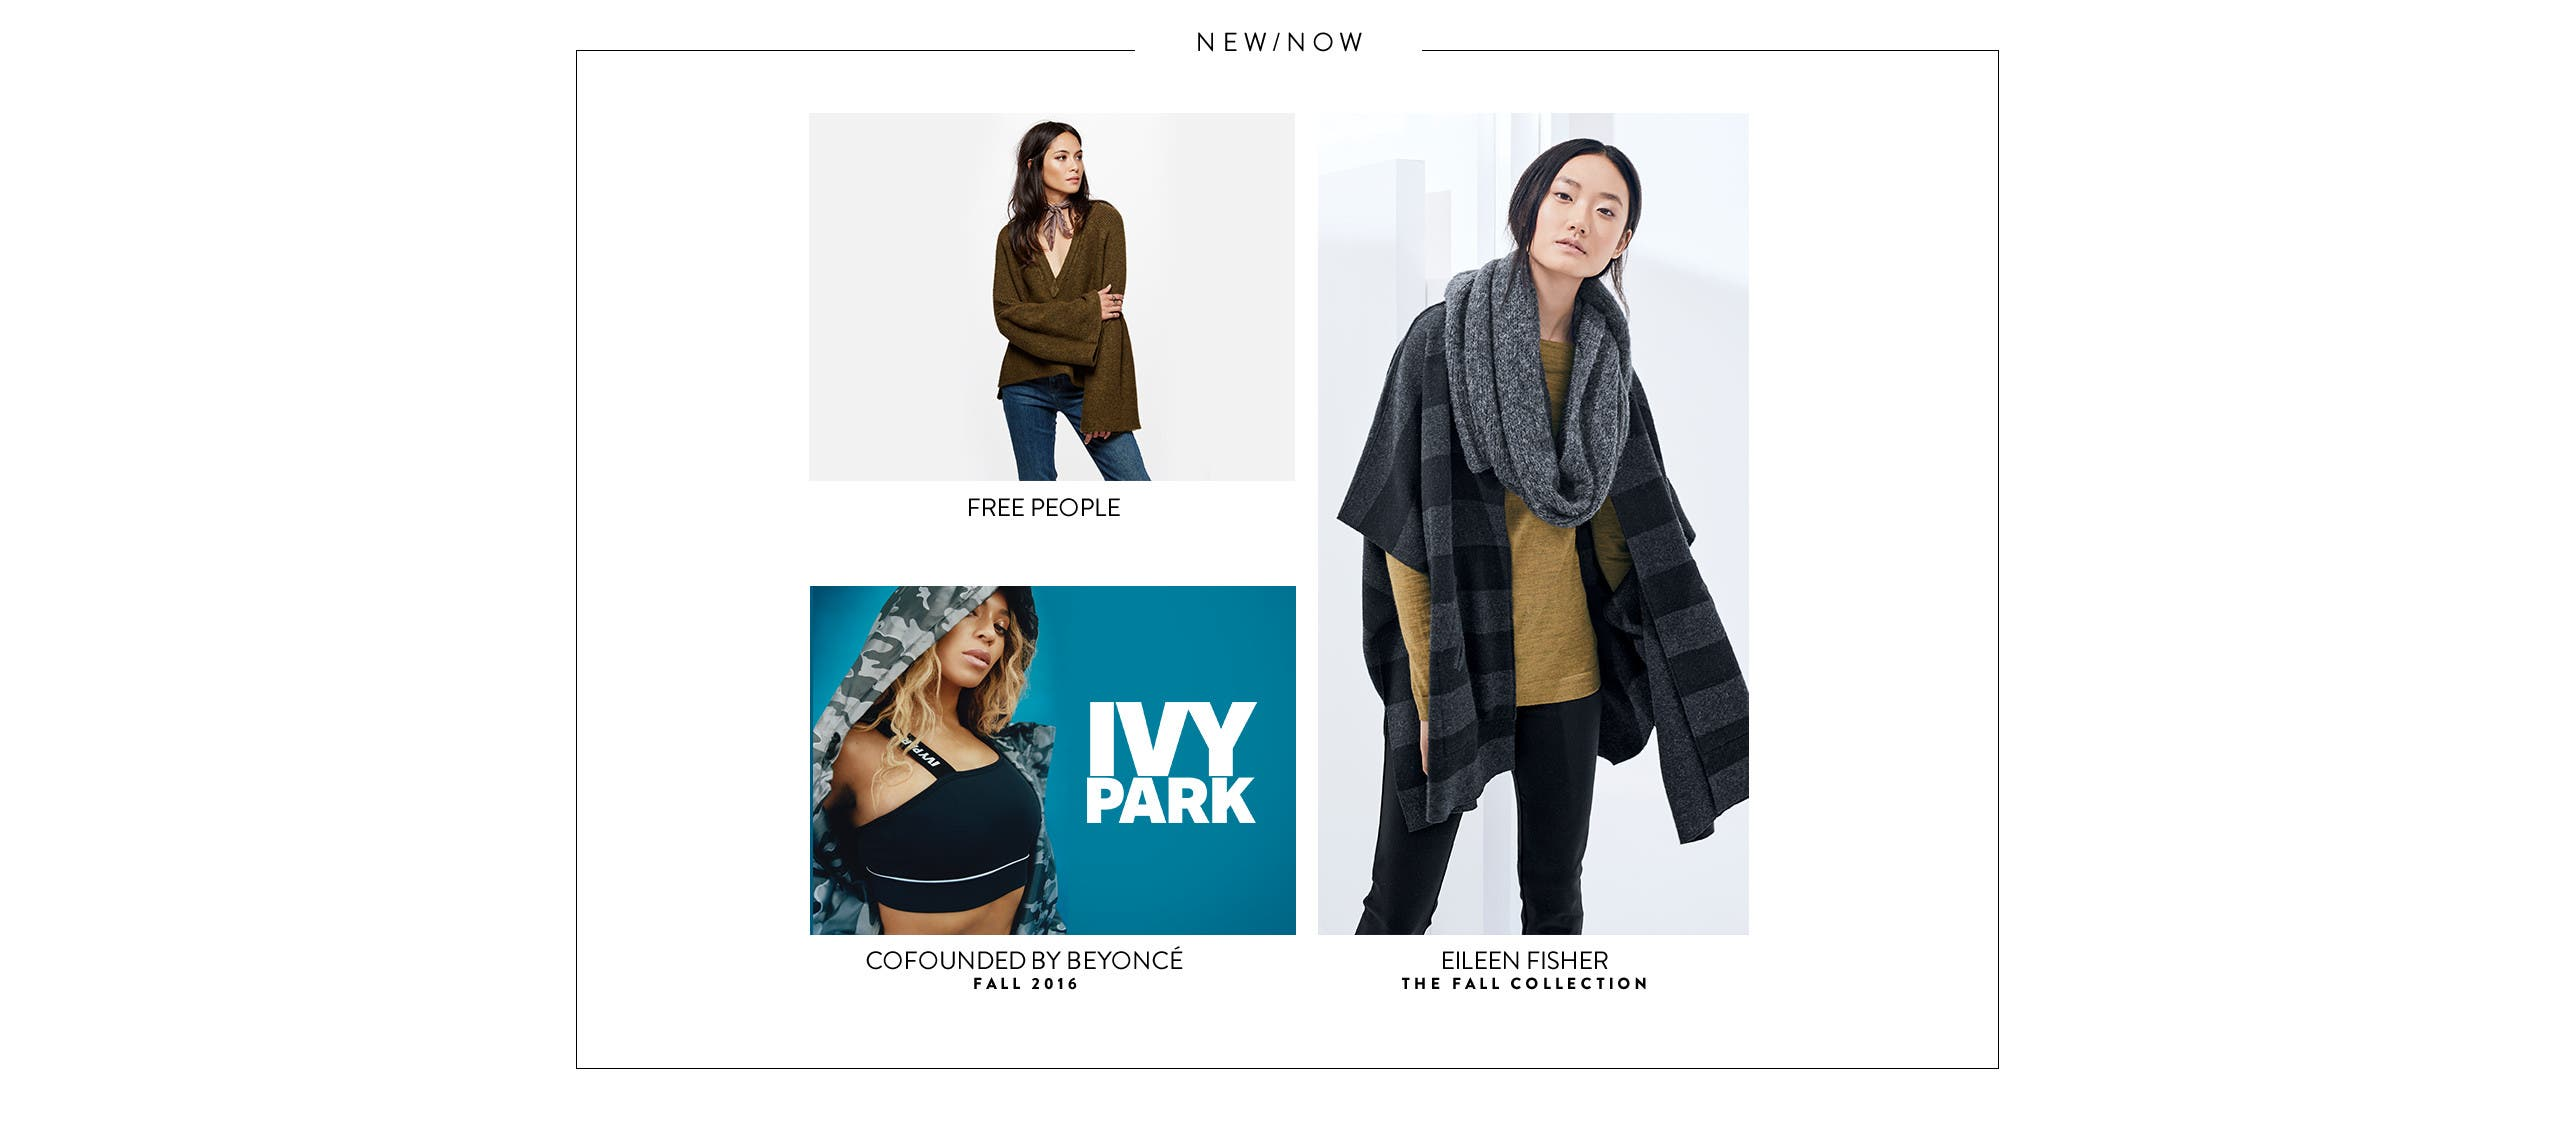 Free People women's clothing. Eileen Fisher: the fall collection. IVY PARK activewear, cofounded by Beyoncé.